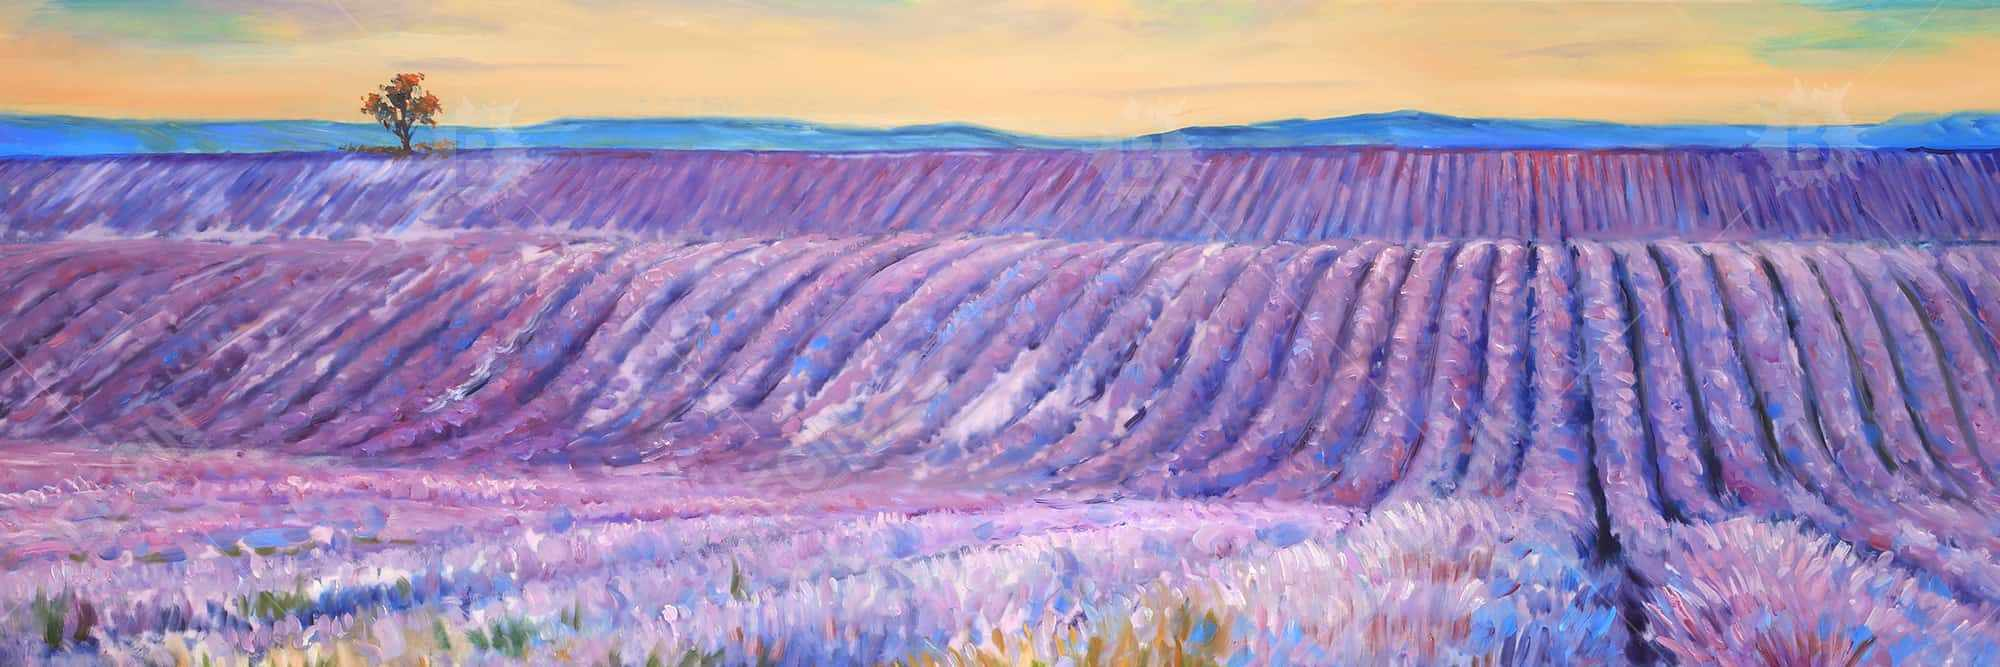 Landscape of a field of lavender